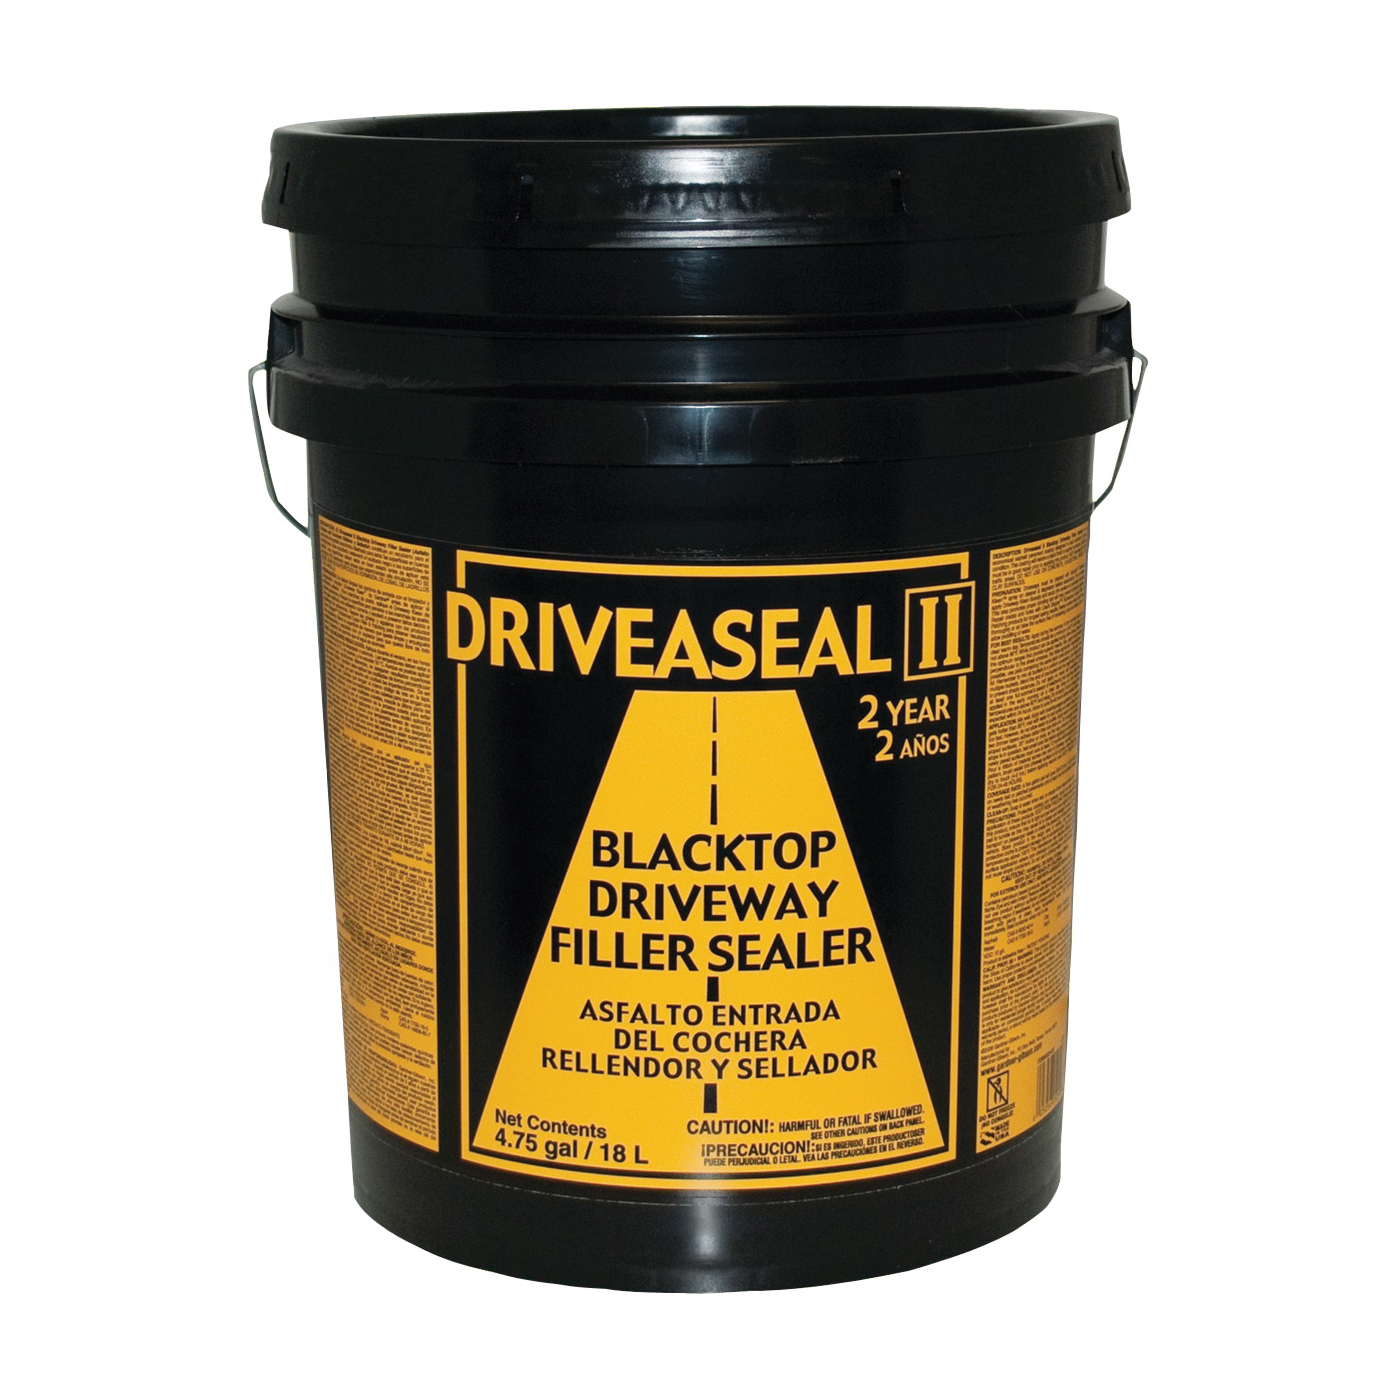 Picture of Gardner 0525-GA Driveway Filler and Sealer, Liquid, 5 gal Package, Pail